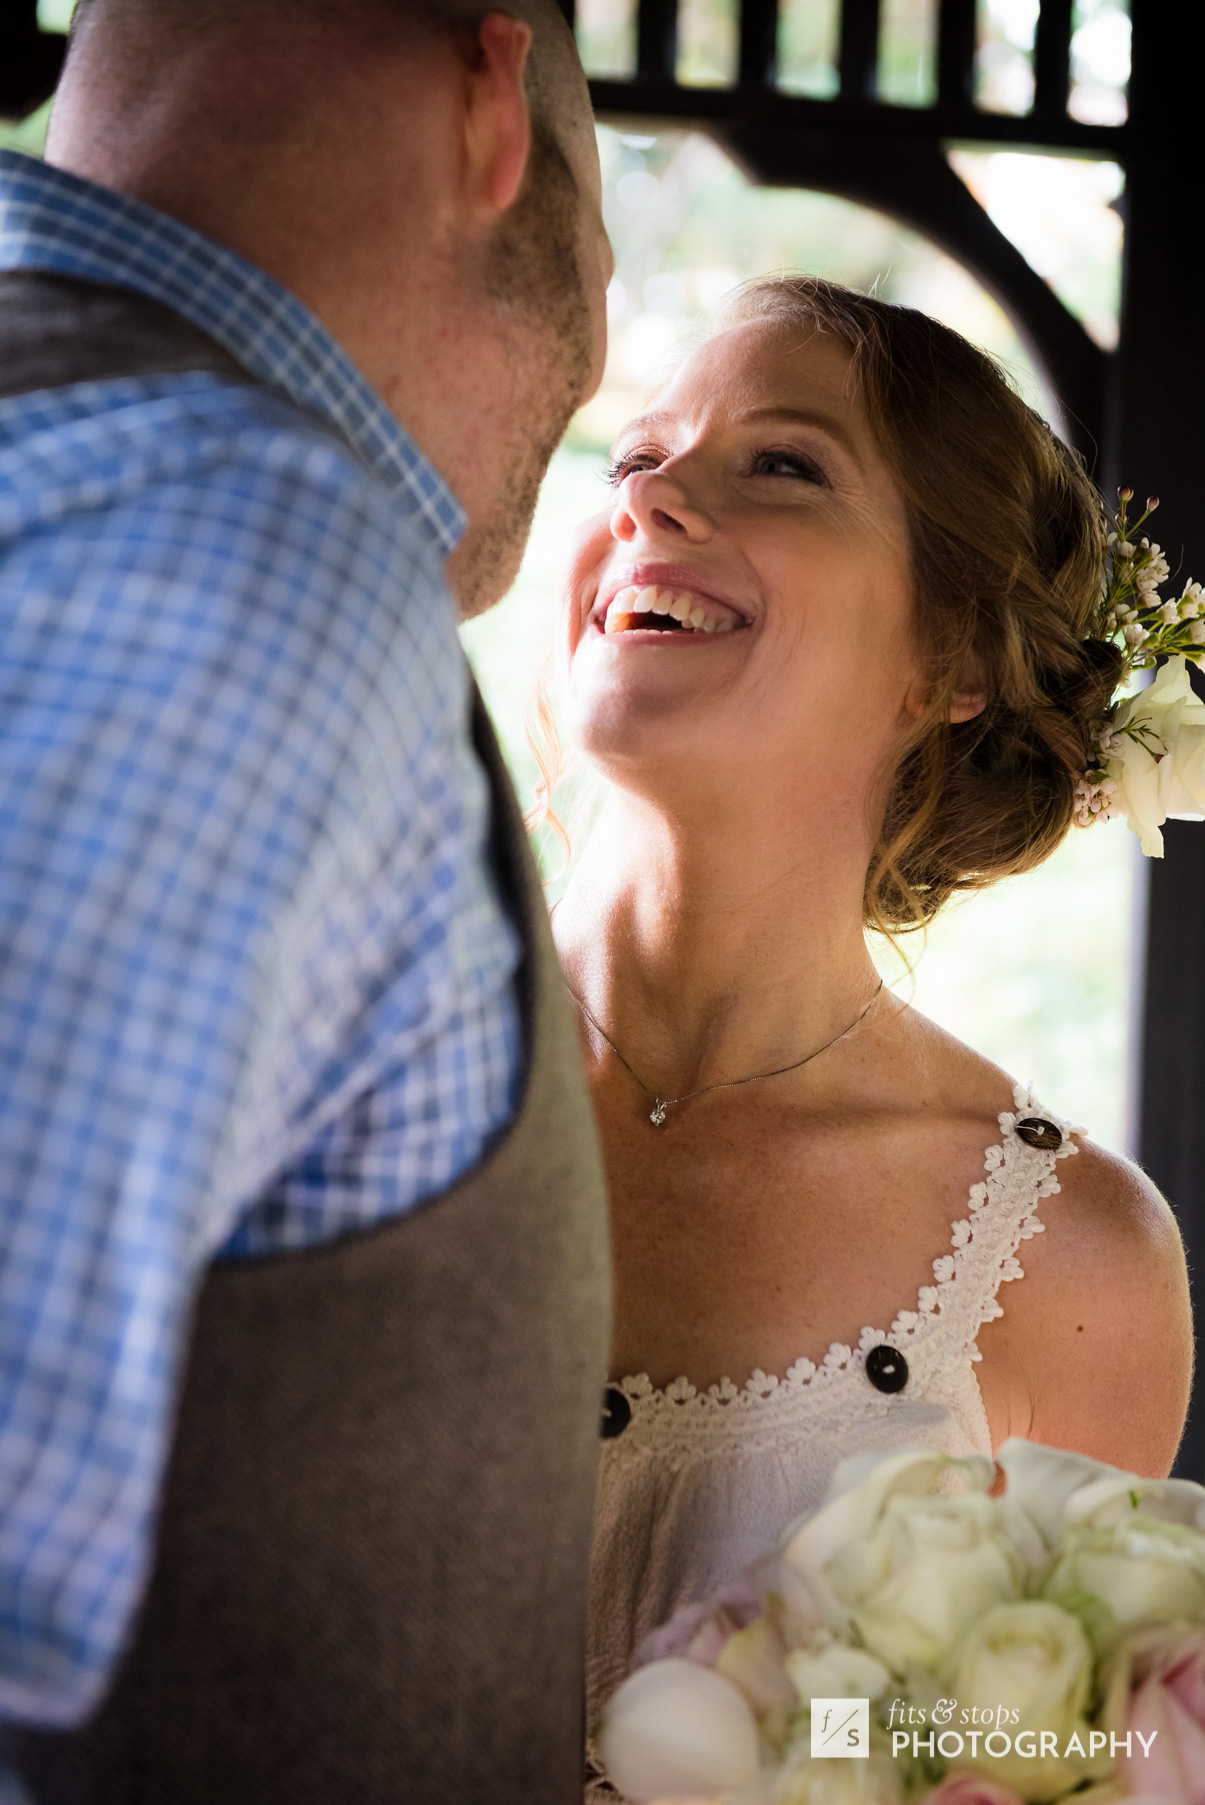 A young bride looks up at the face of her groom during a wedding ceremony underneath a gazebo,